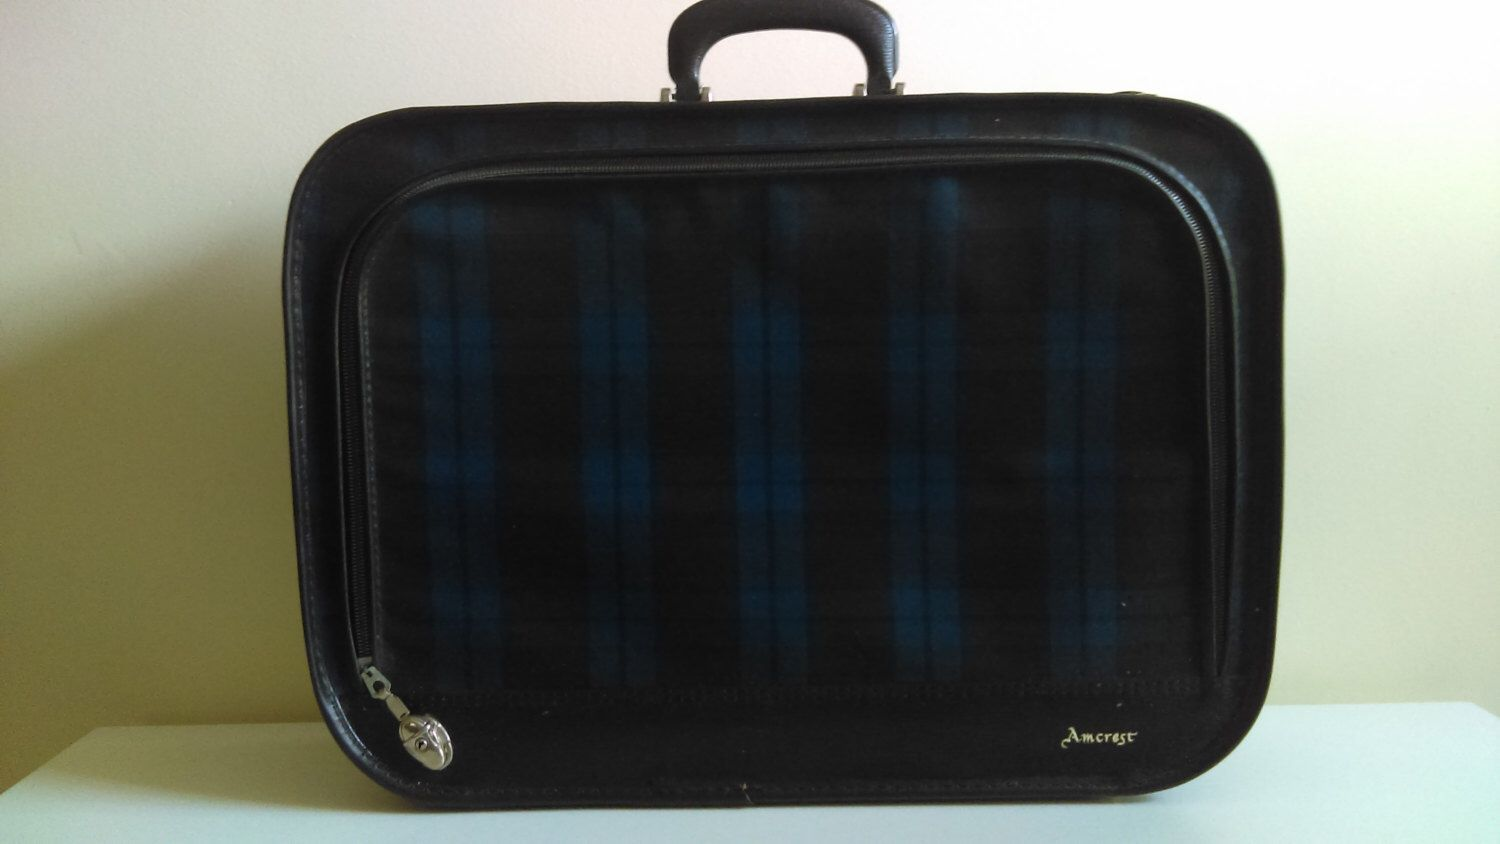 Vintage Blue and Black Plaid Amcrest Suitcase. by SadieandJenny on Etsy https://www.etsy.com/listing/460027260/vintage-blue-and-black-plaid-amcrest